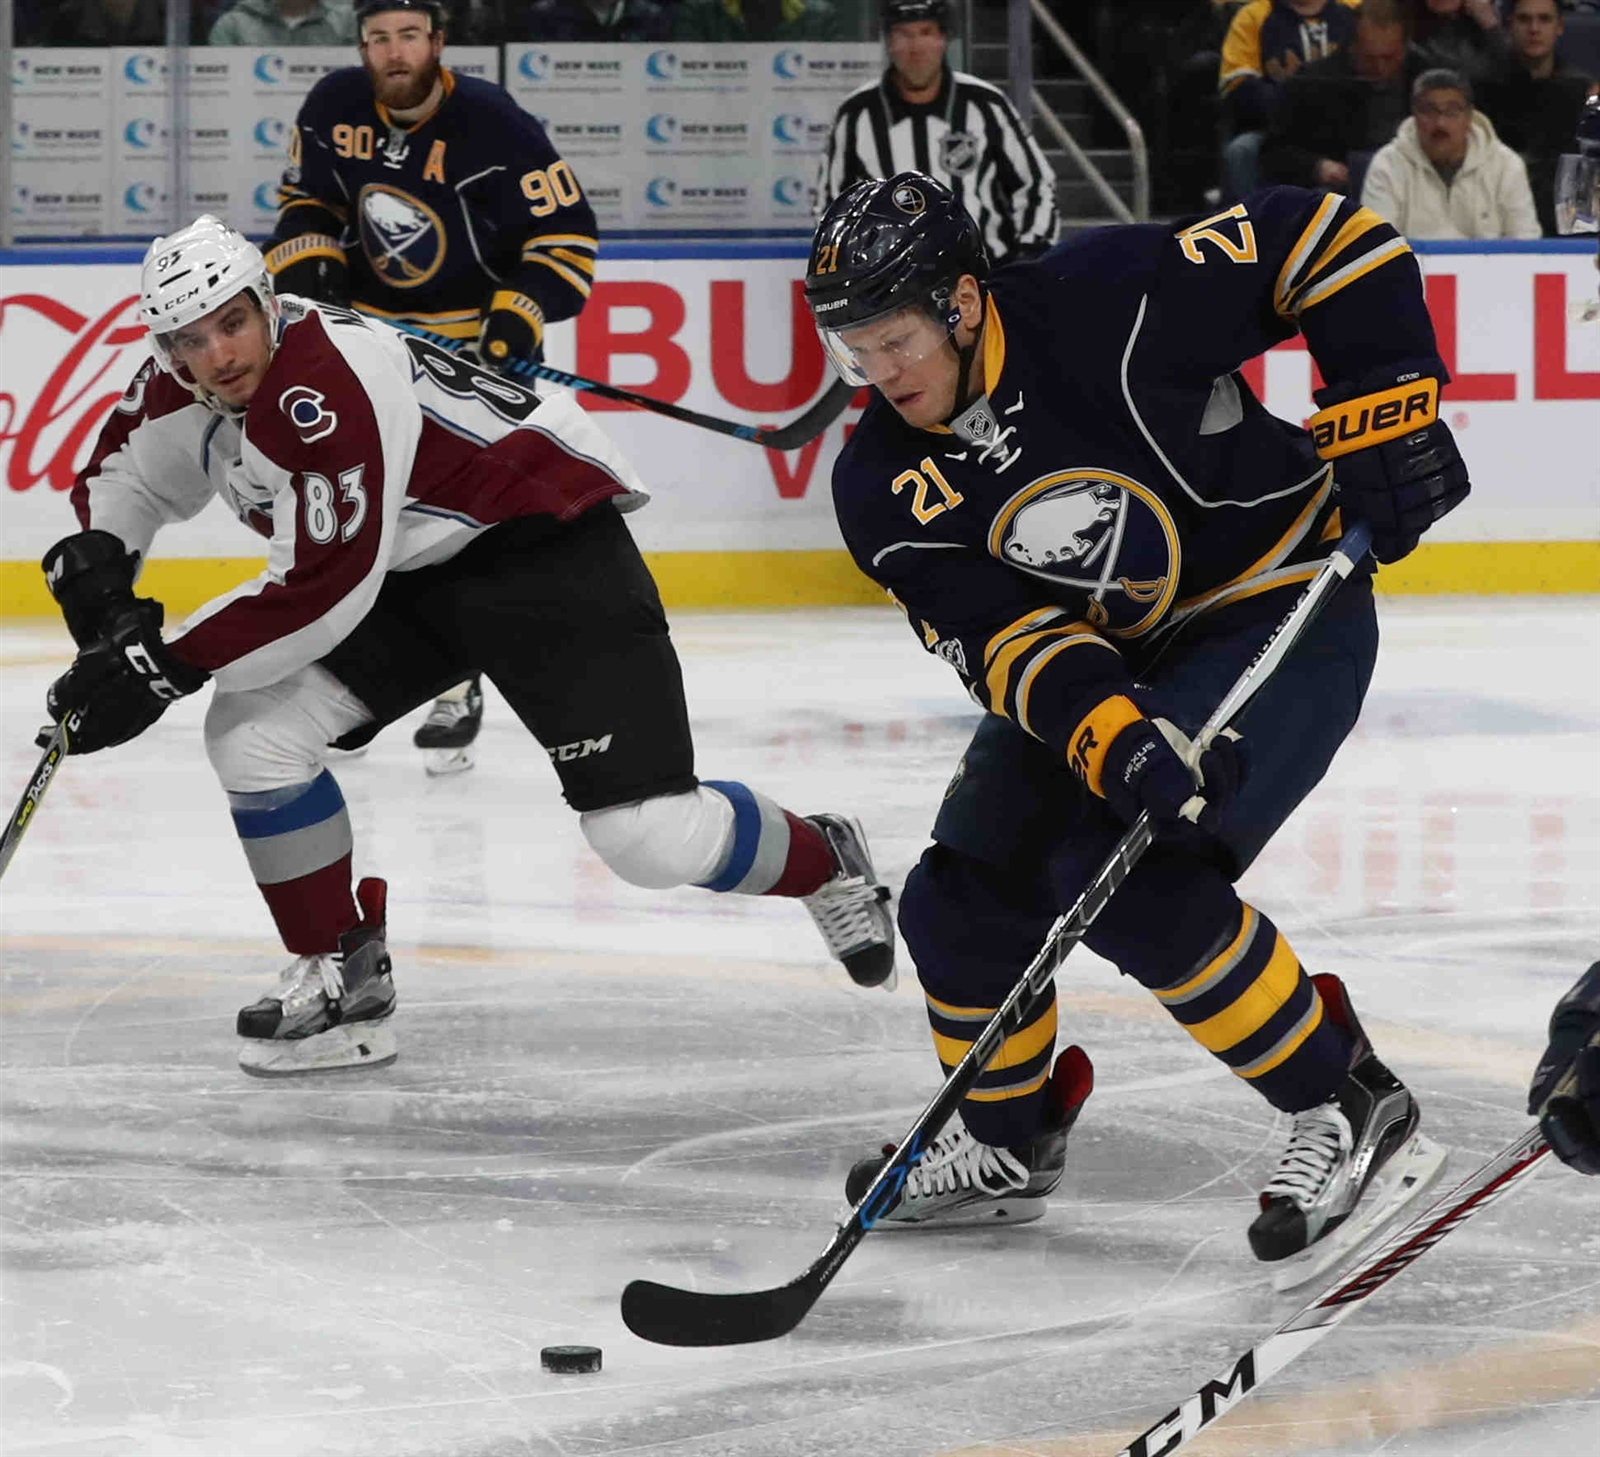 Kyle Okposo works the puck against Colorado's Matt Nieto during the Sabres' 2-0 win over the Avs last week in KeyBank Center. The teams meet again Saturday in Denver (James P. McCoy/Buffalo News).